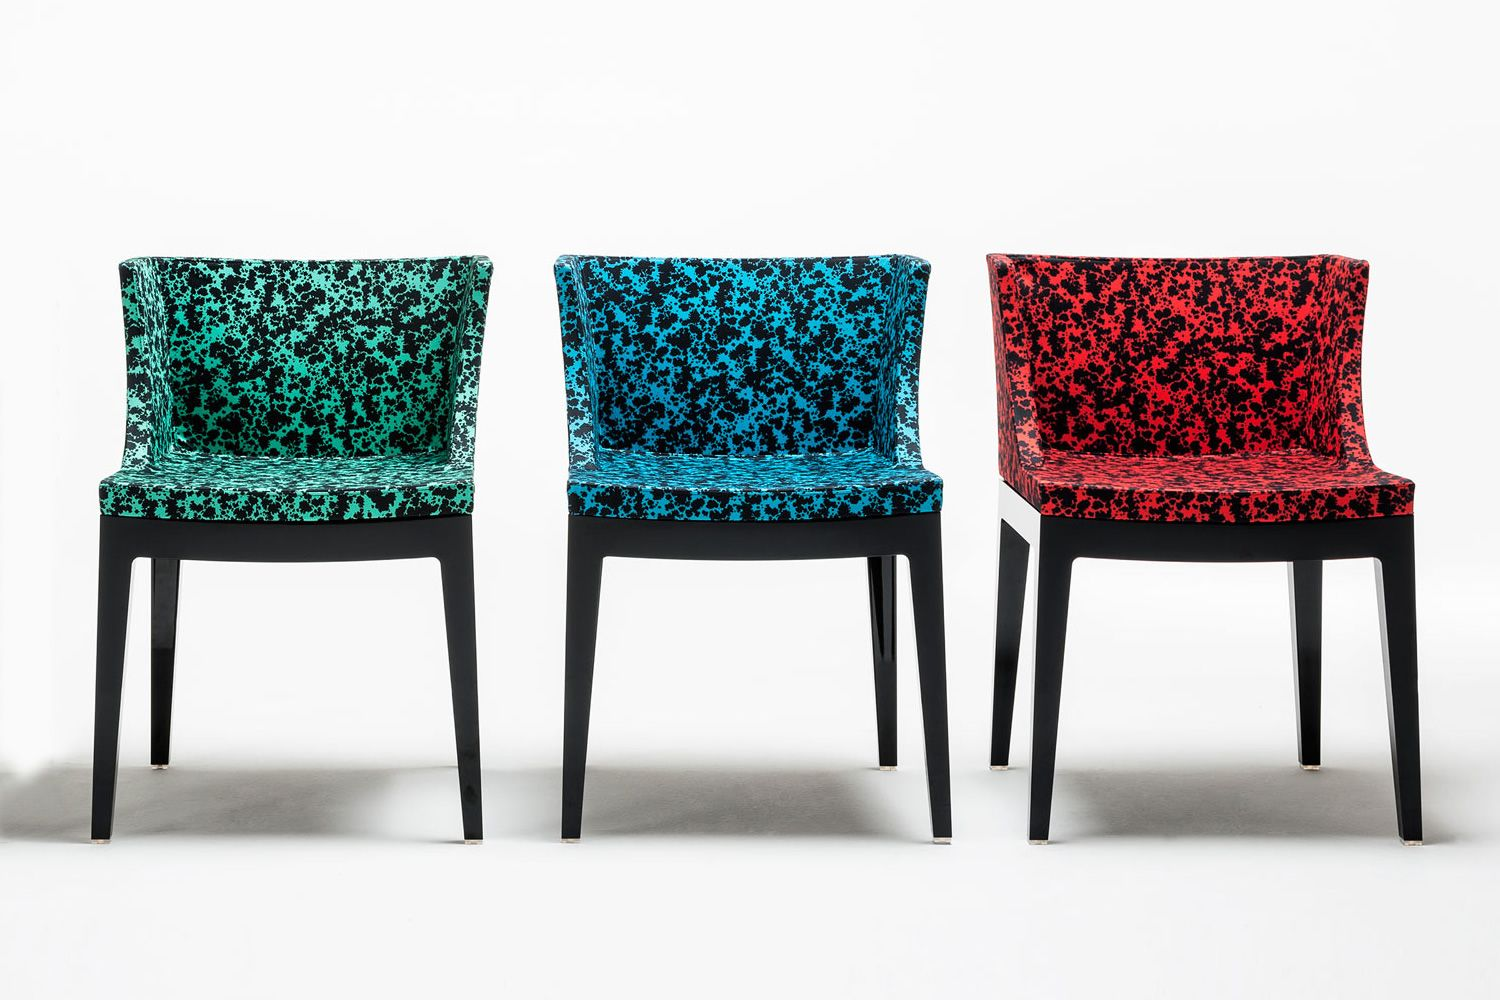 Mademoiselle memphis by sottsass design small armchair kartell goes sottsass - Fauteuil kartell mademoiselle ...